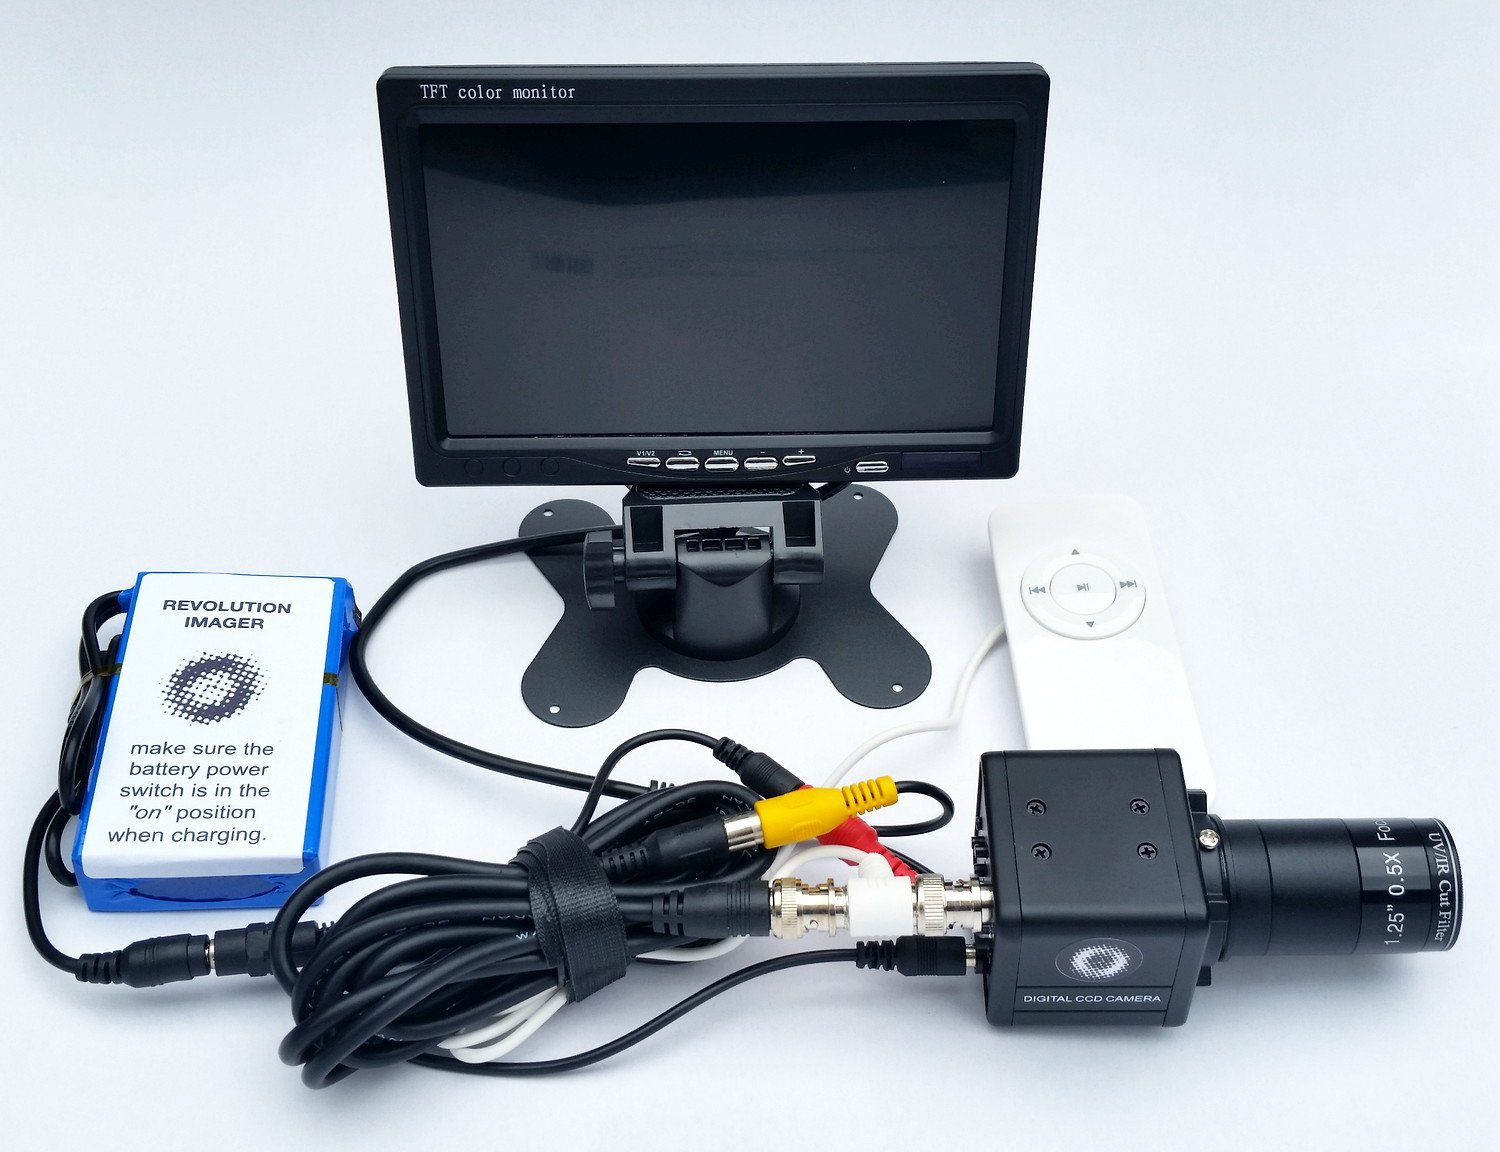 Revolution Imager 1.25 inches Live View CCD Video Astronomy Camera System